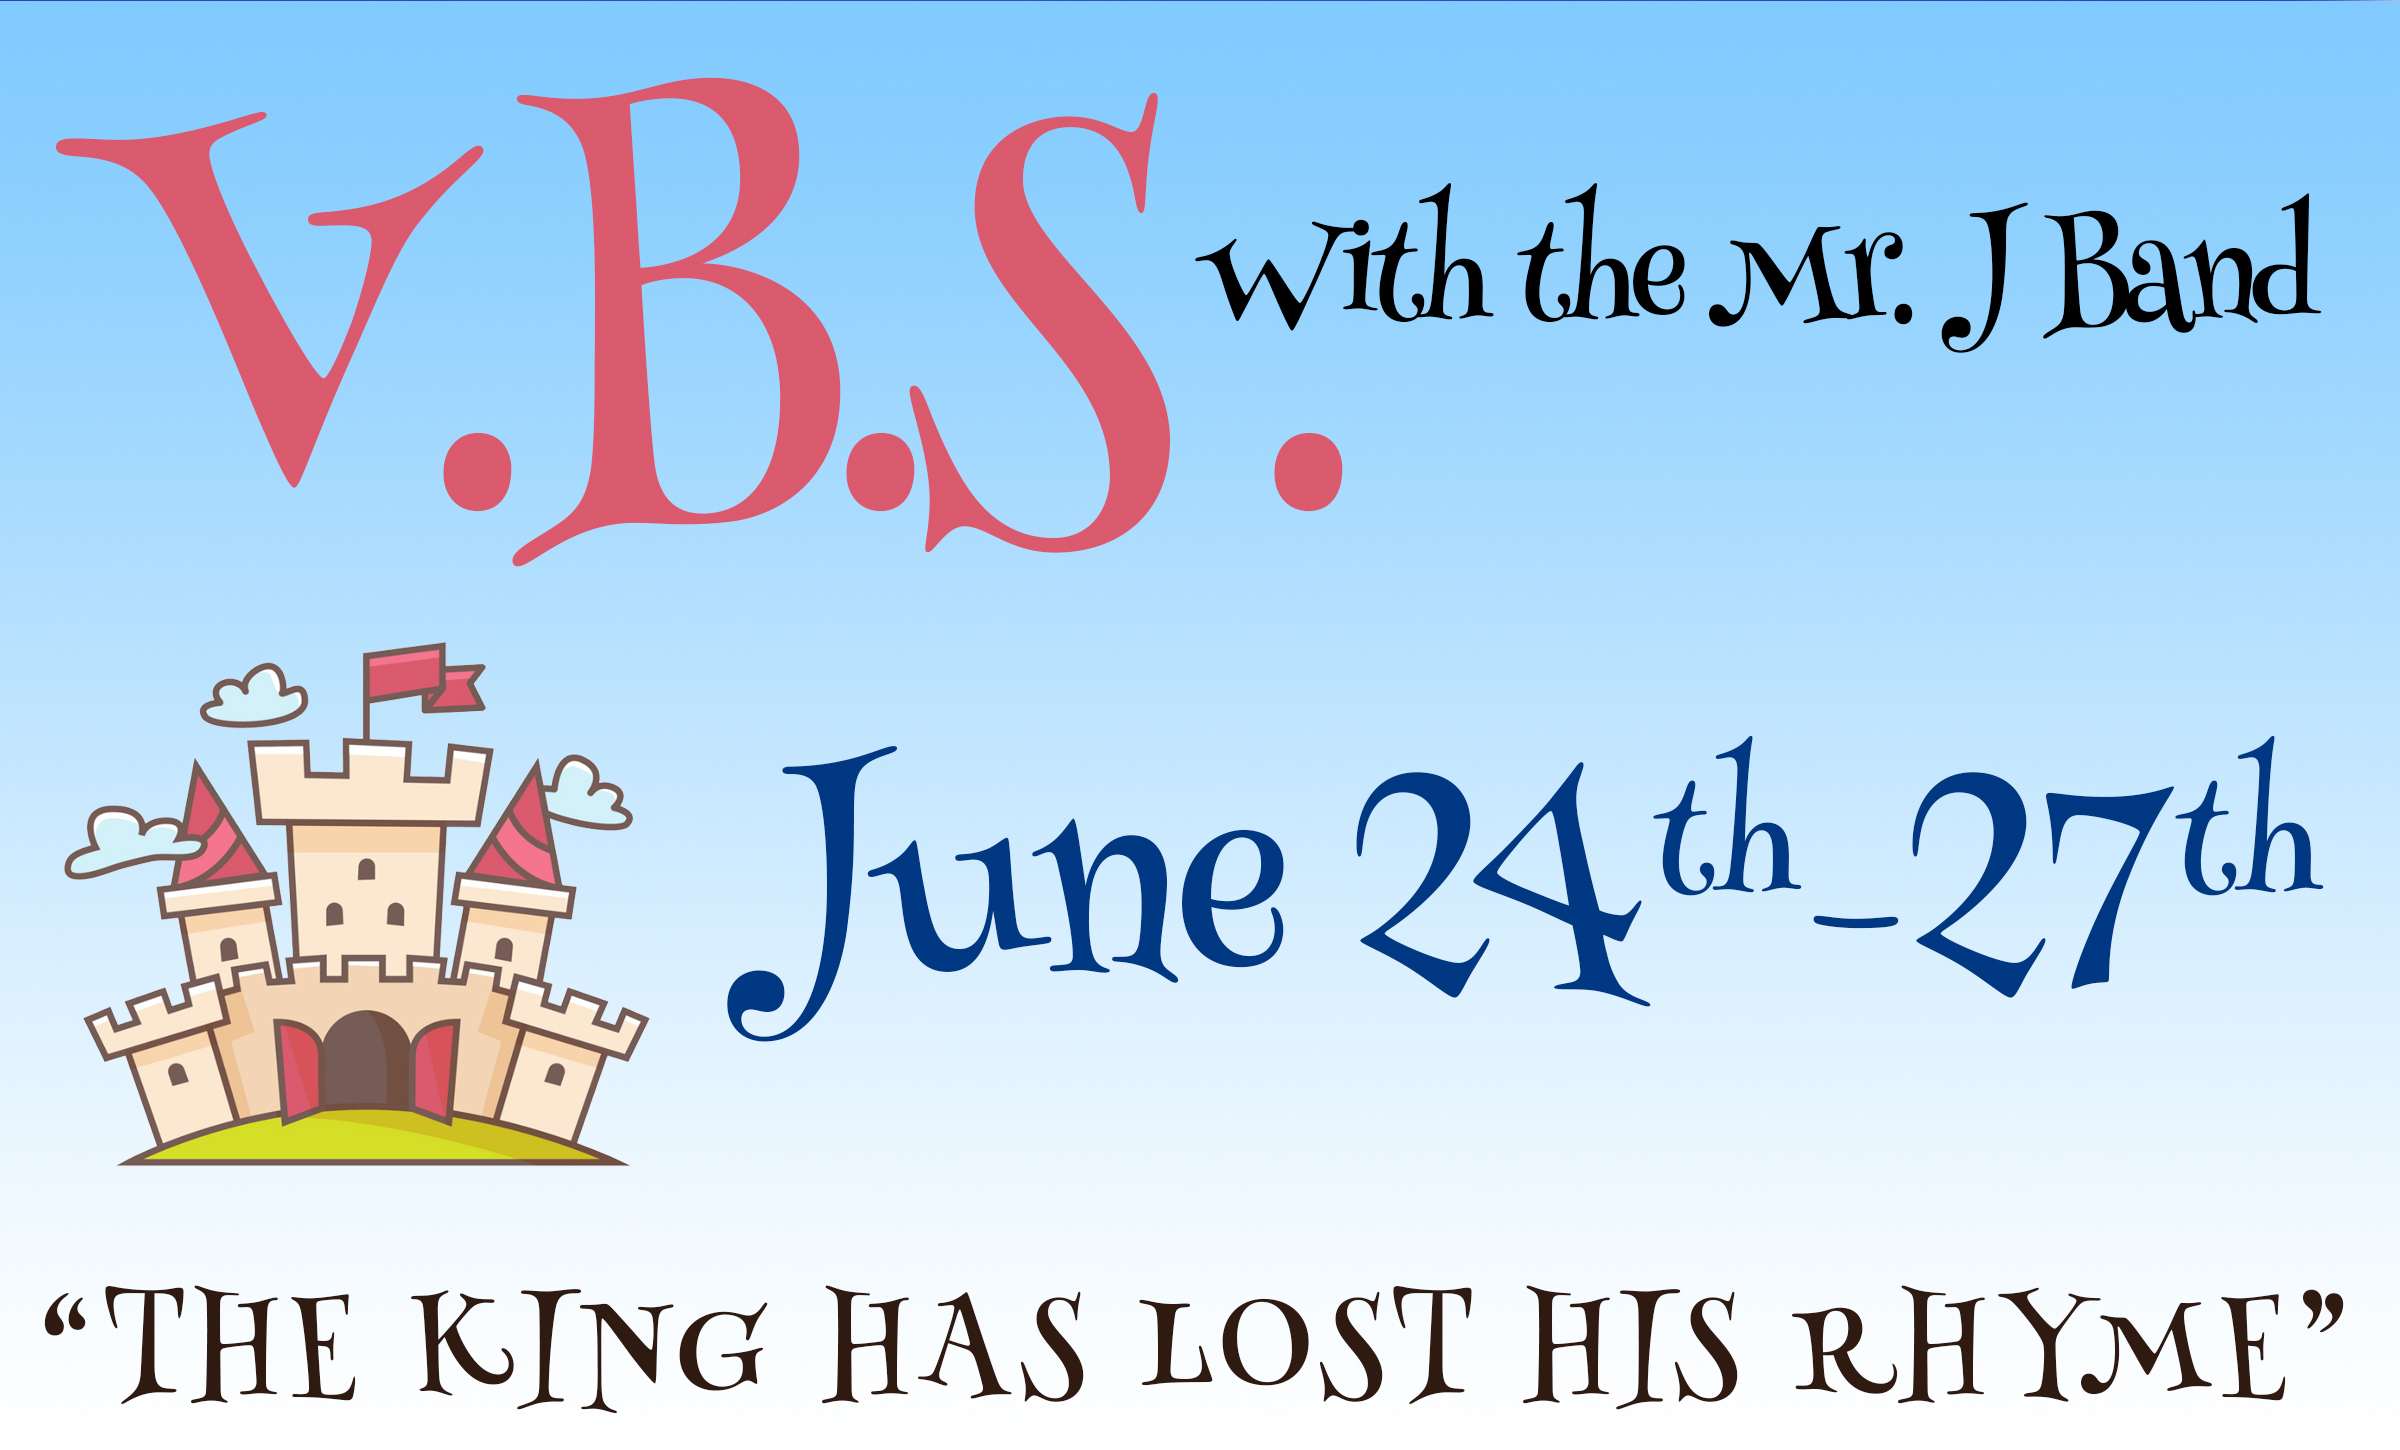 Vbs 2018   in house flyer